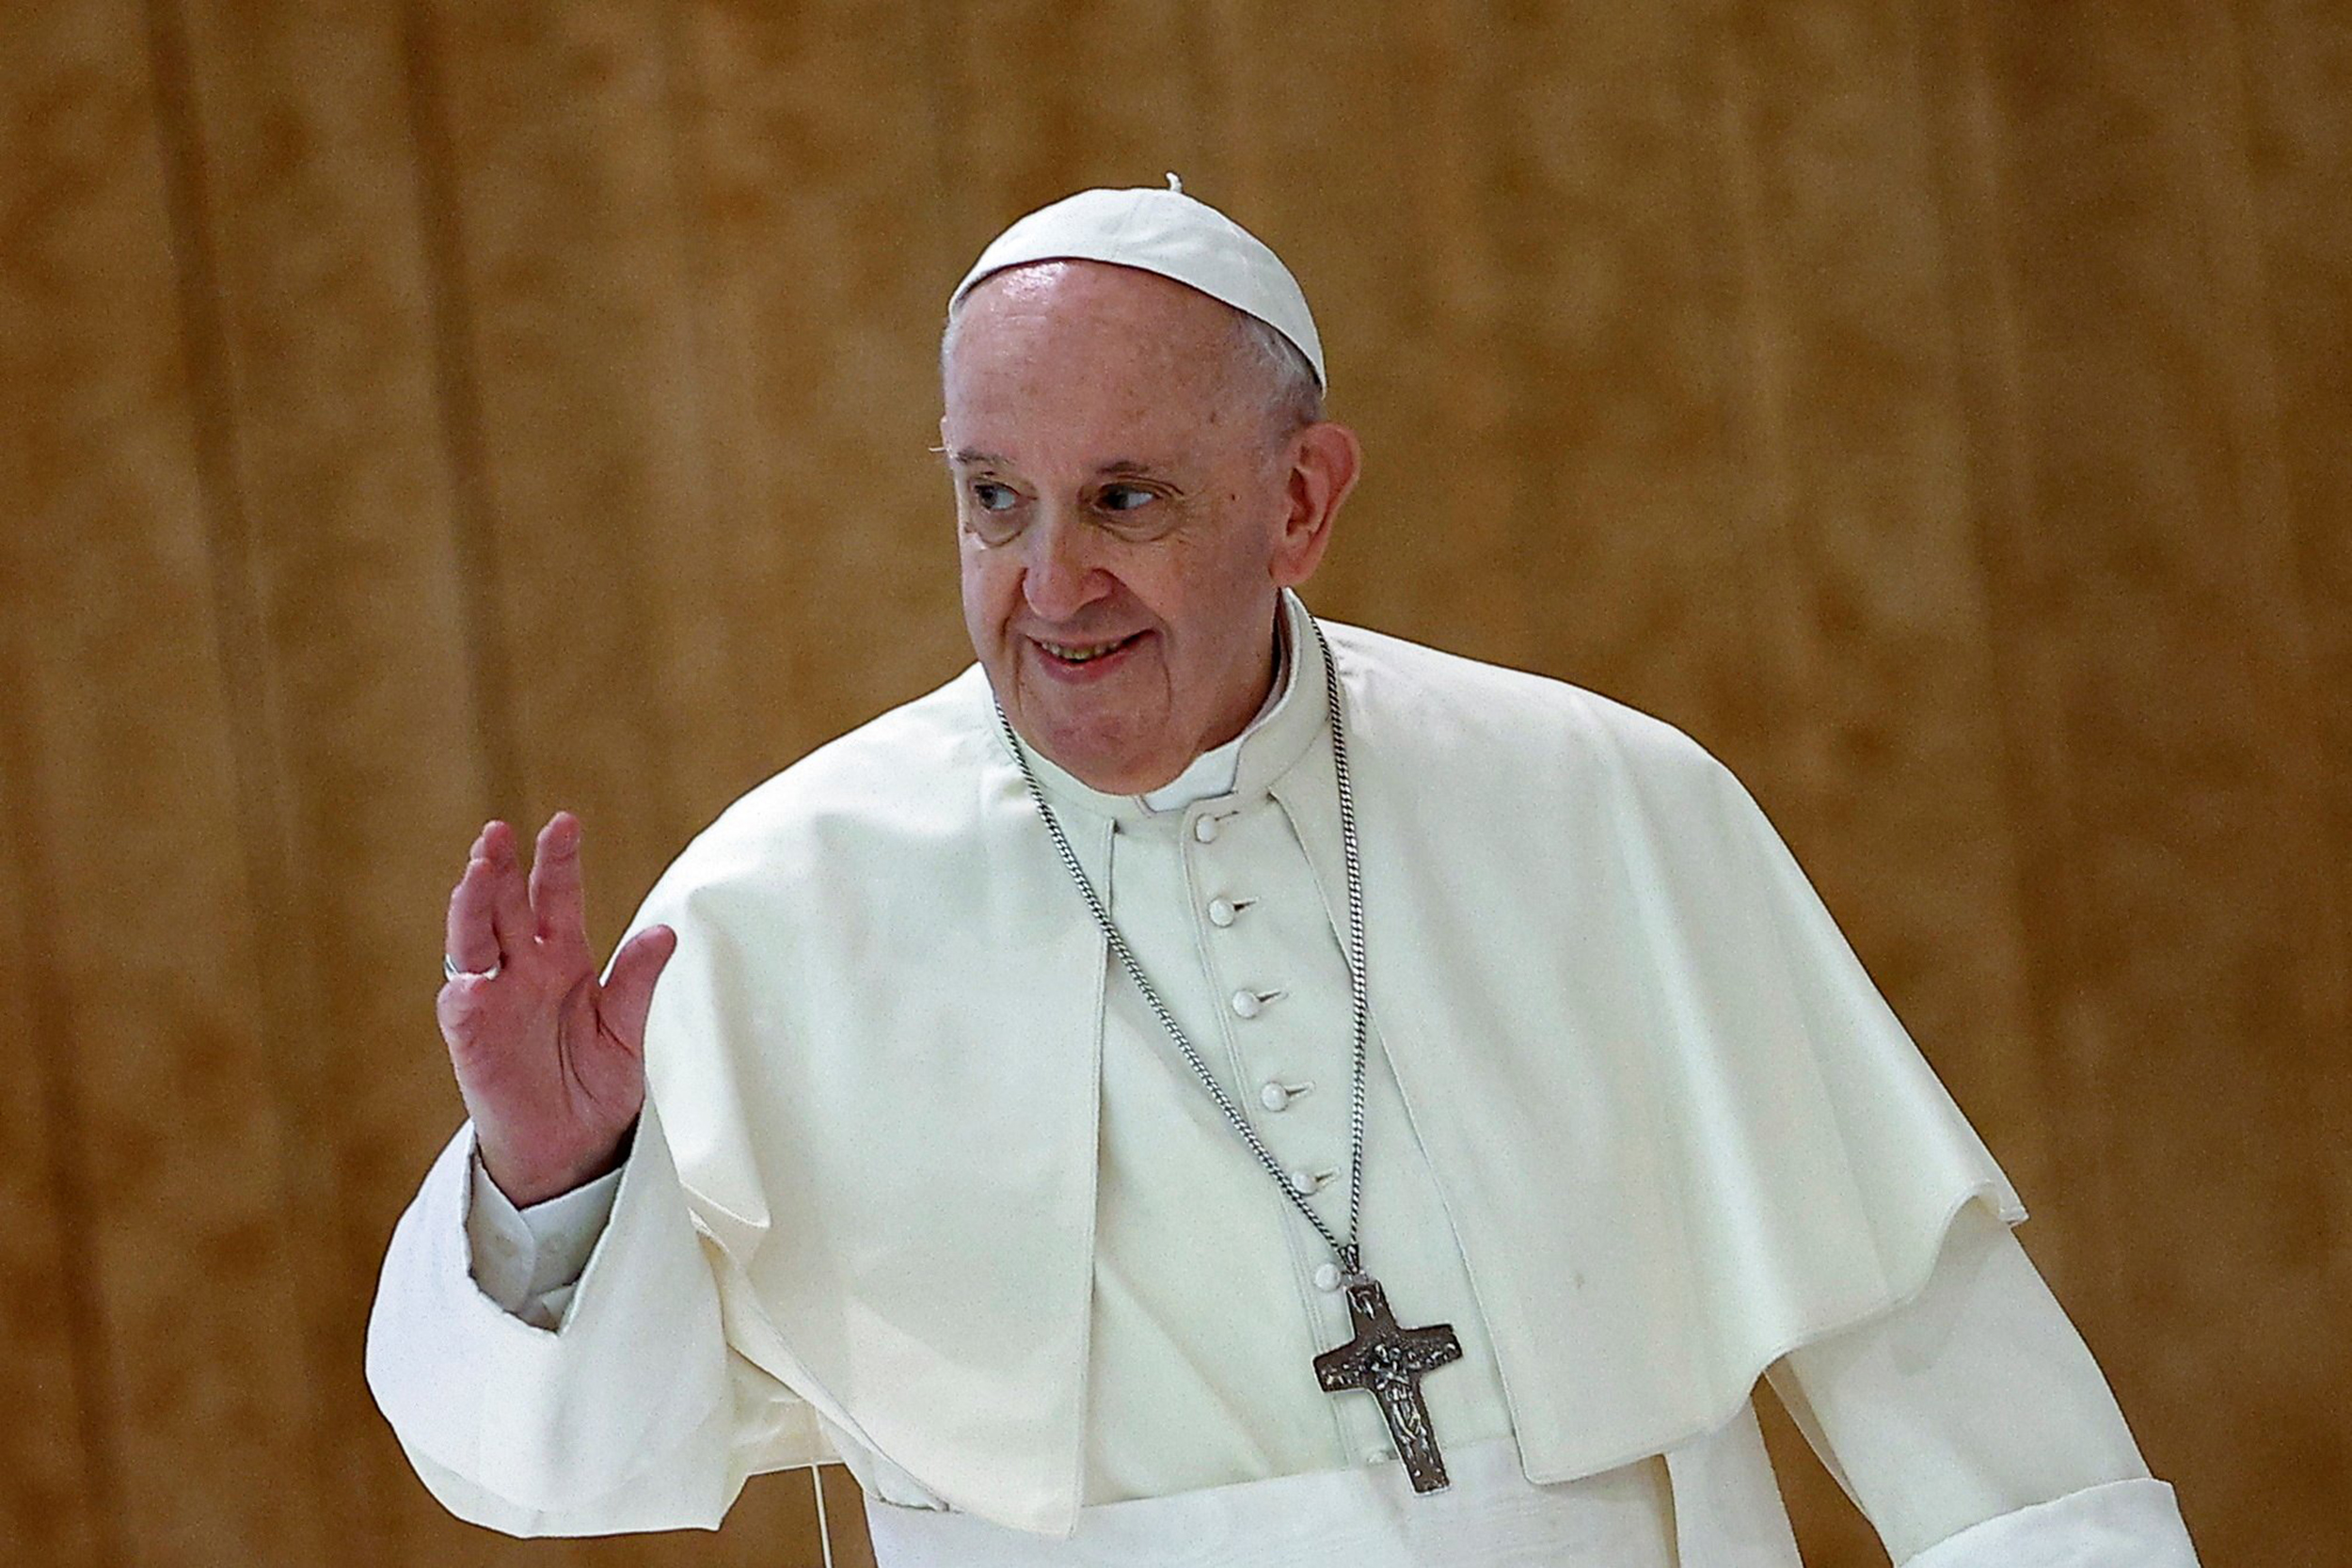 Pope Francis urges people to get vaccinated, calling it 'an act of love'